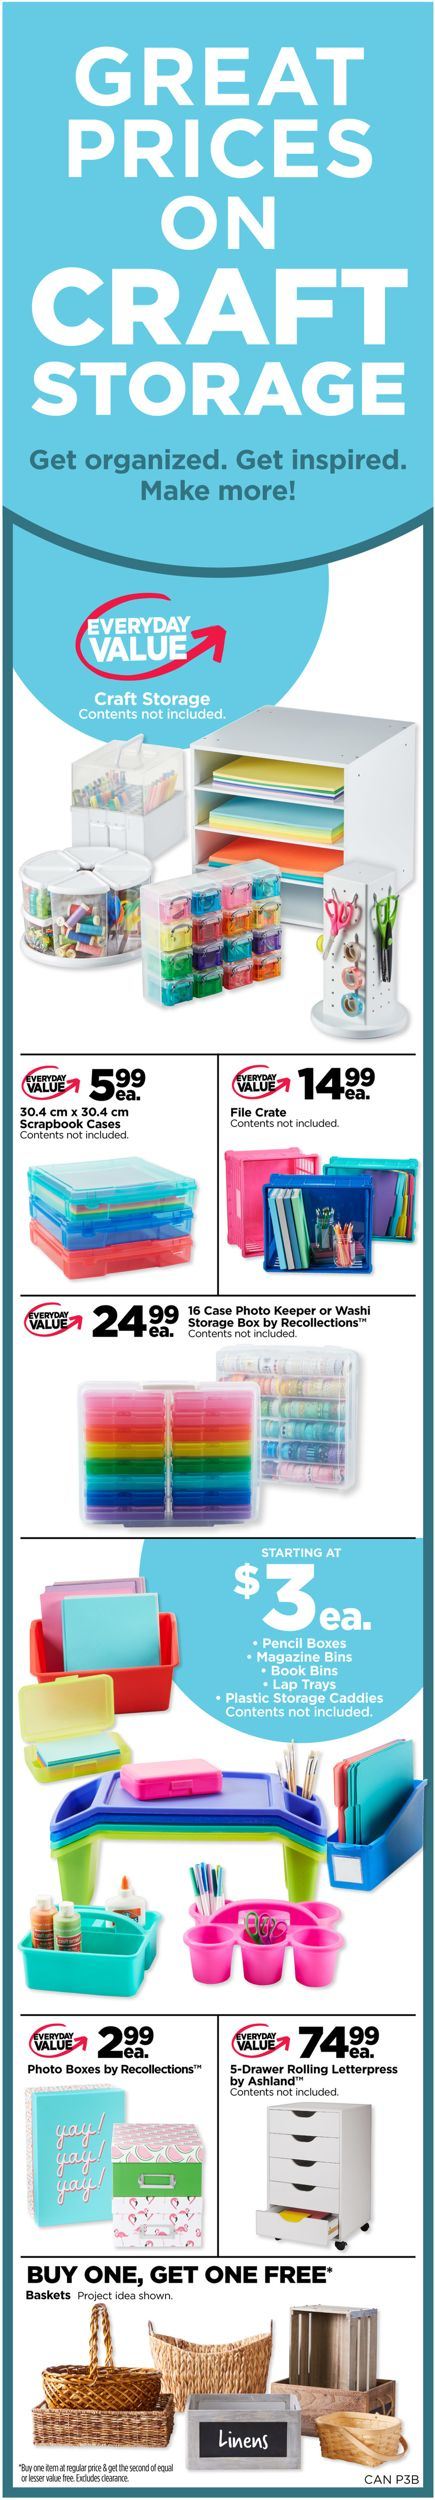 Michaels Flyer - 07/19-07/25/2019 (Page 3)